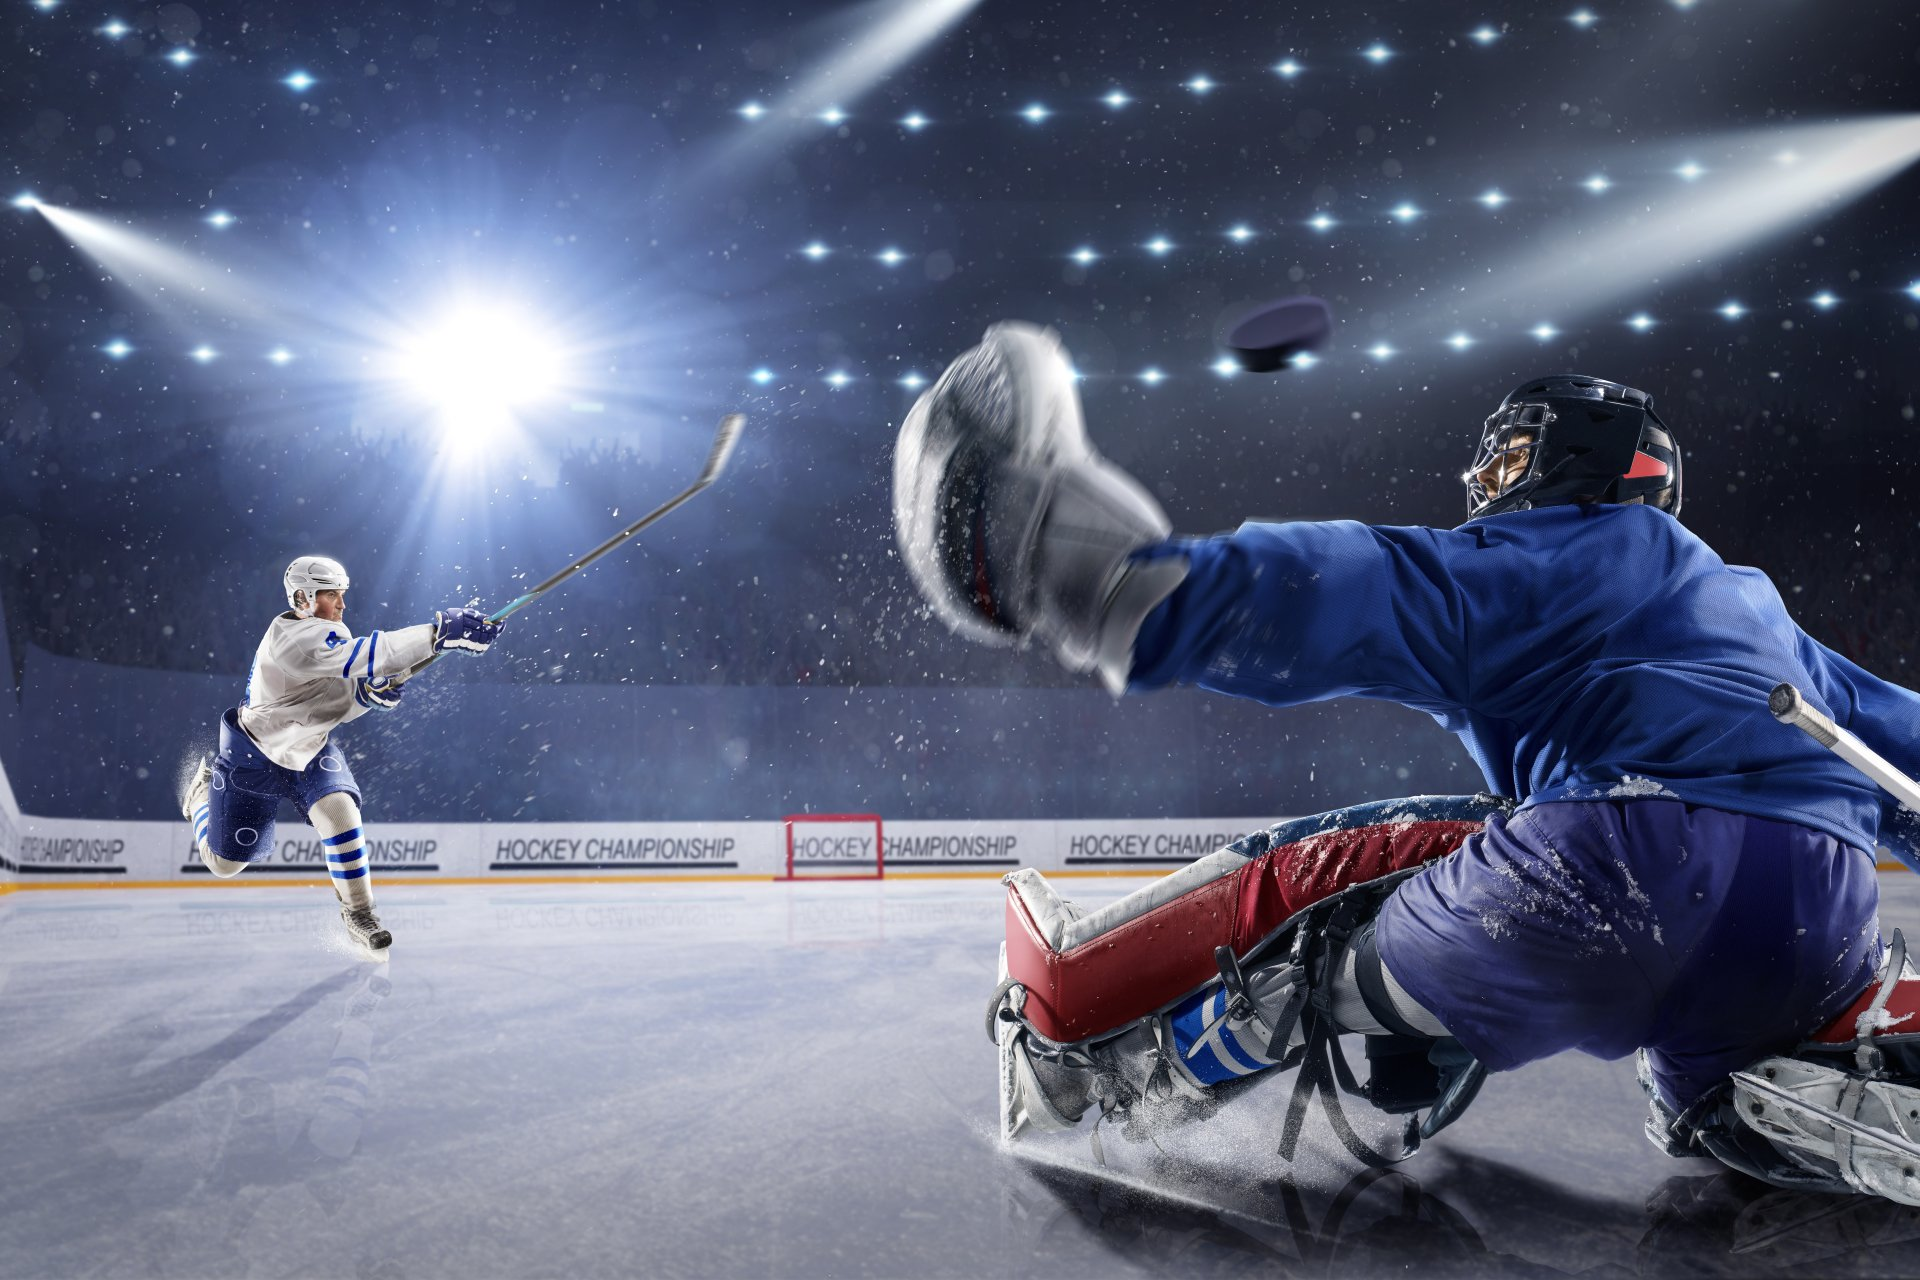 23 4k Ultra Hd Hockey Wallpapers Background Images Wallpaper Abyss